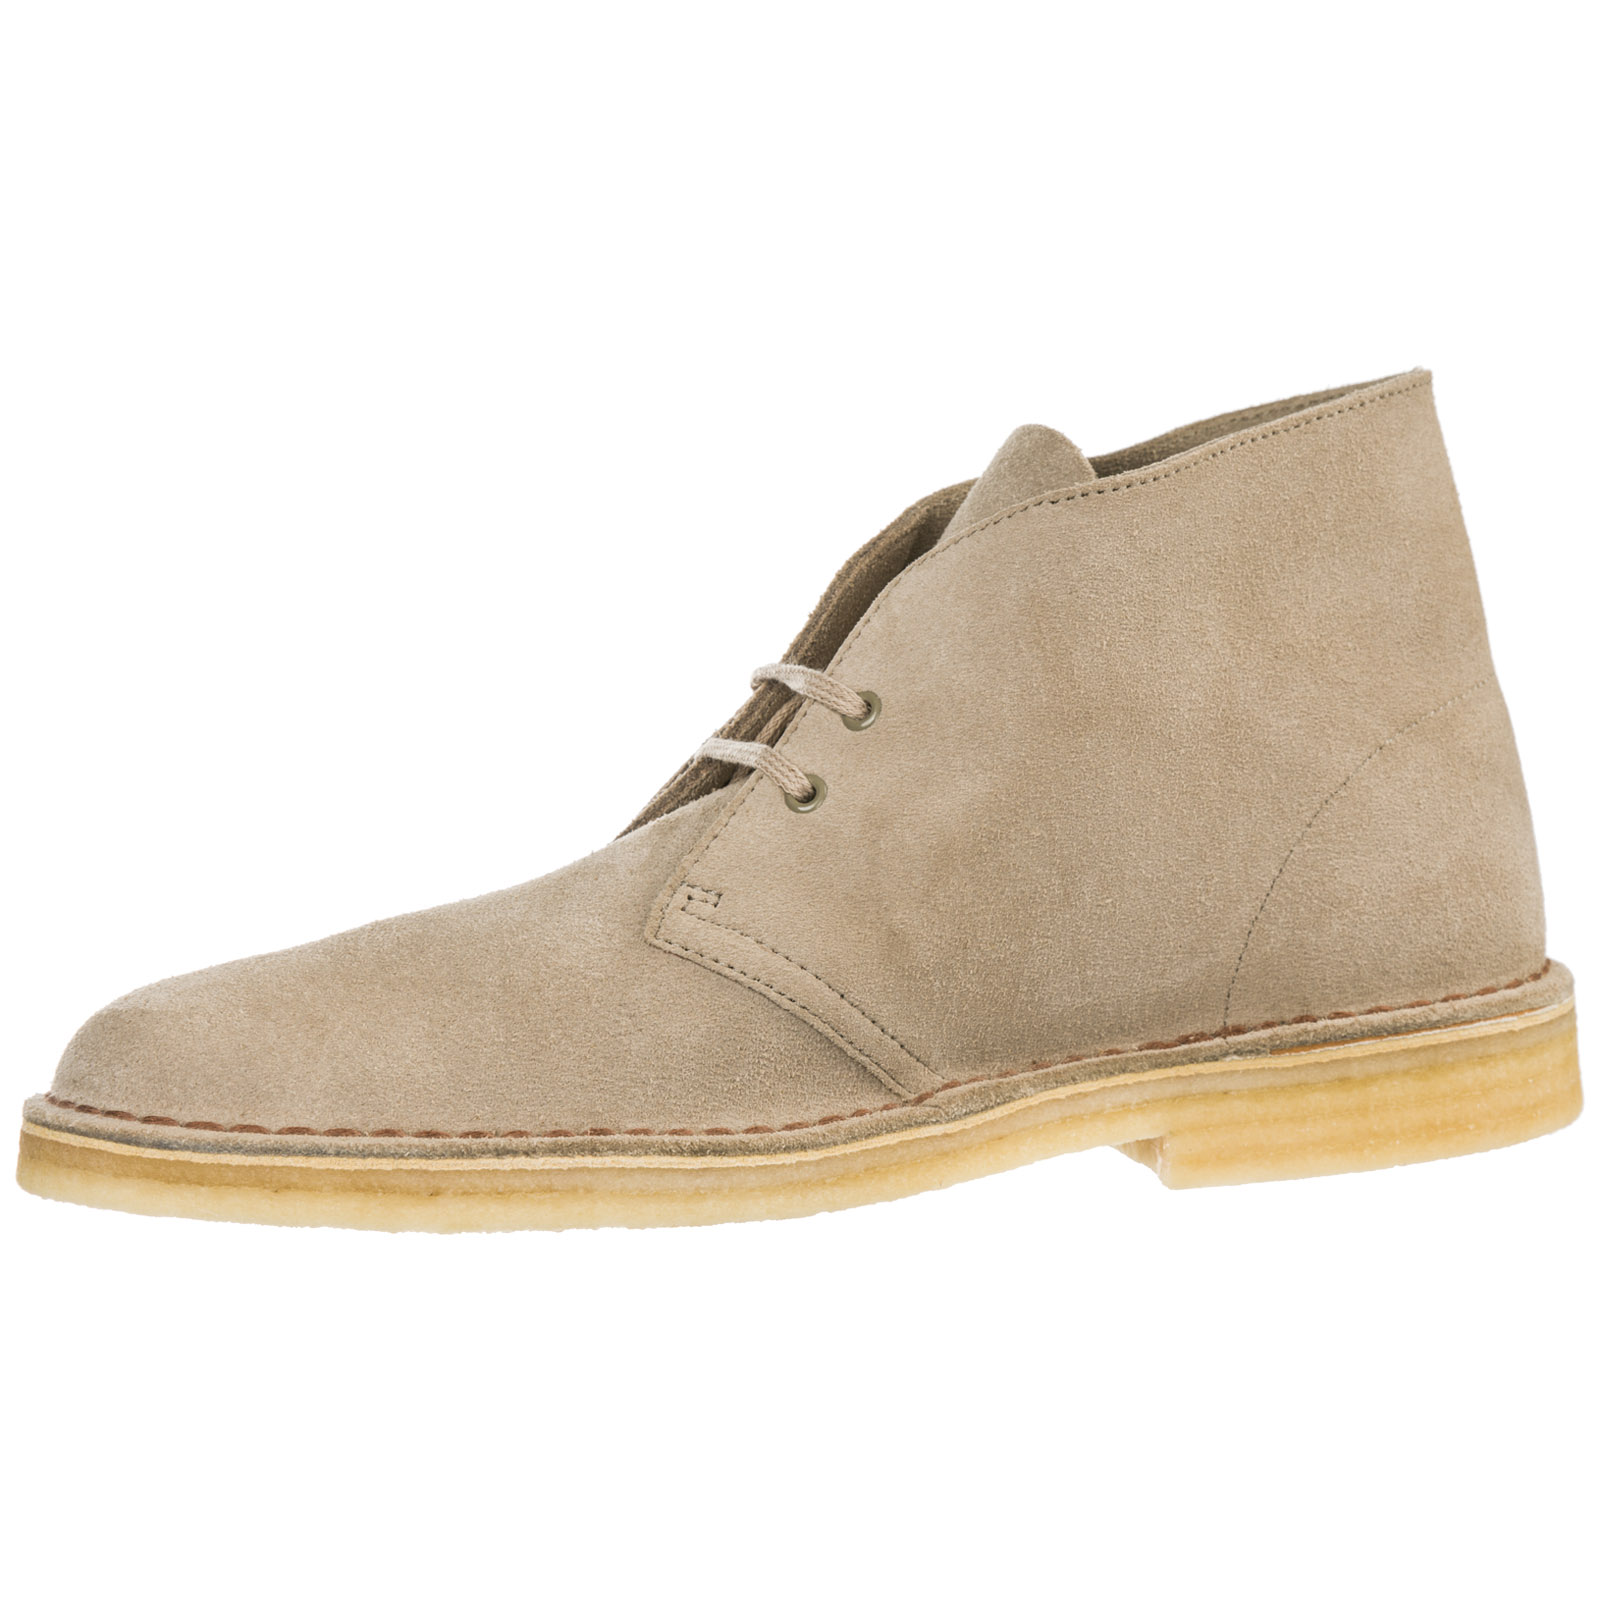 Men's suede desert boots lace up ankle boots desert